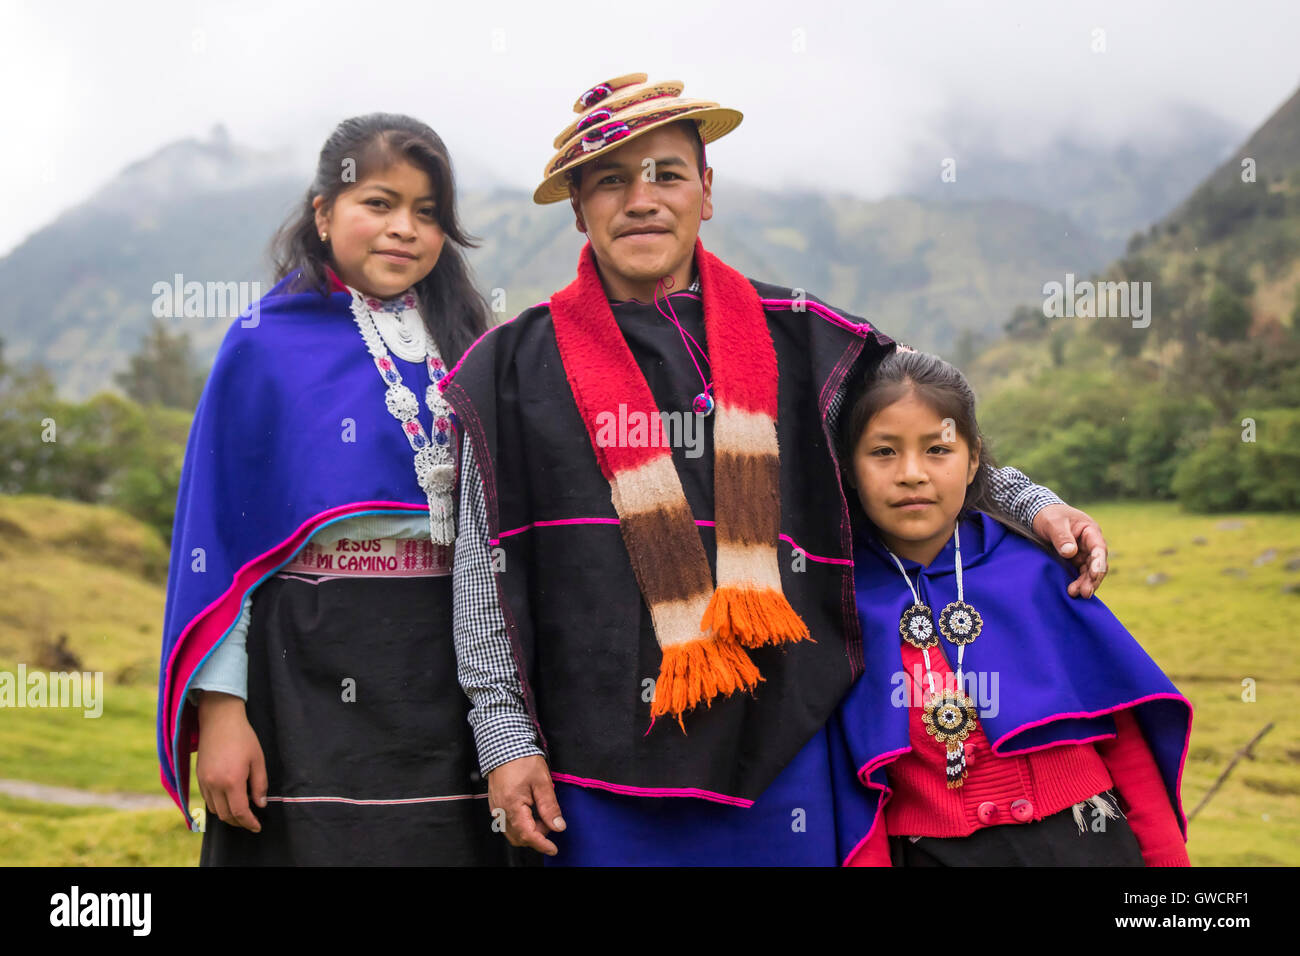 Misak indigenous people, Guambiano inhabits this territory located in the town of Silvia, Cauca. There harvested - Stock Image